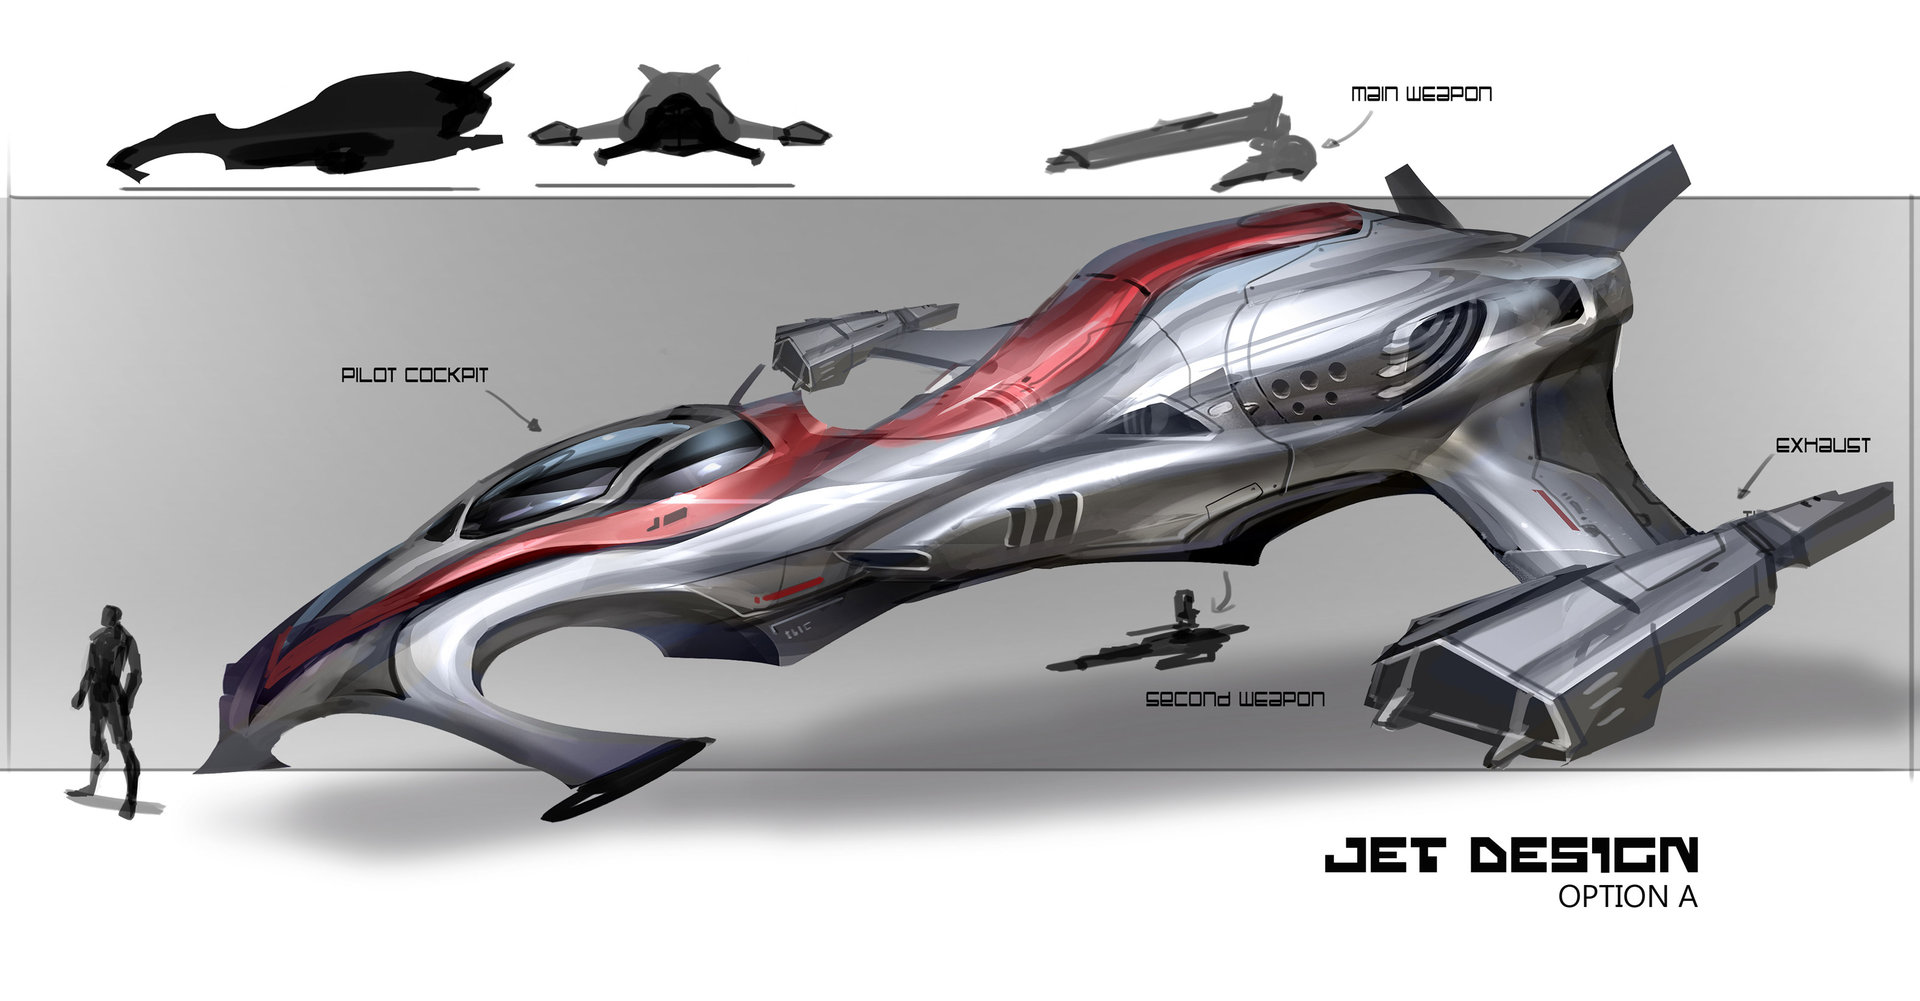 Jeremy chong jet design optiona